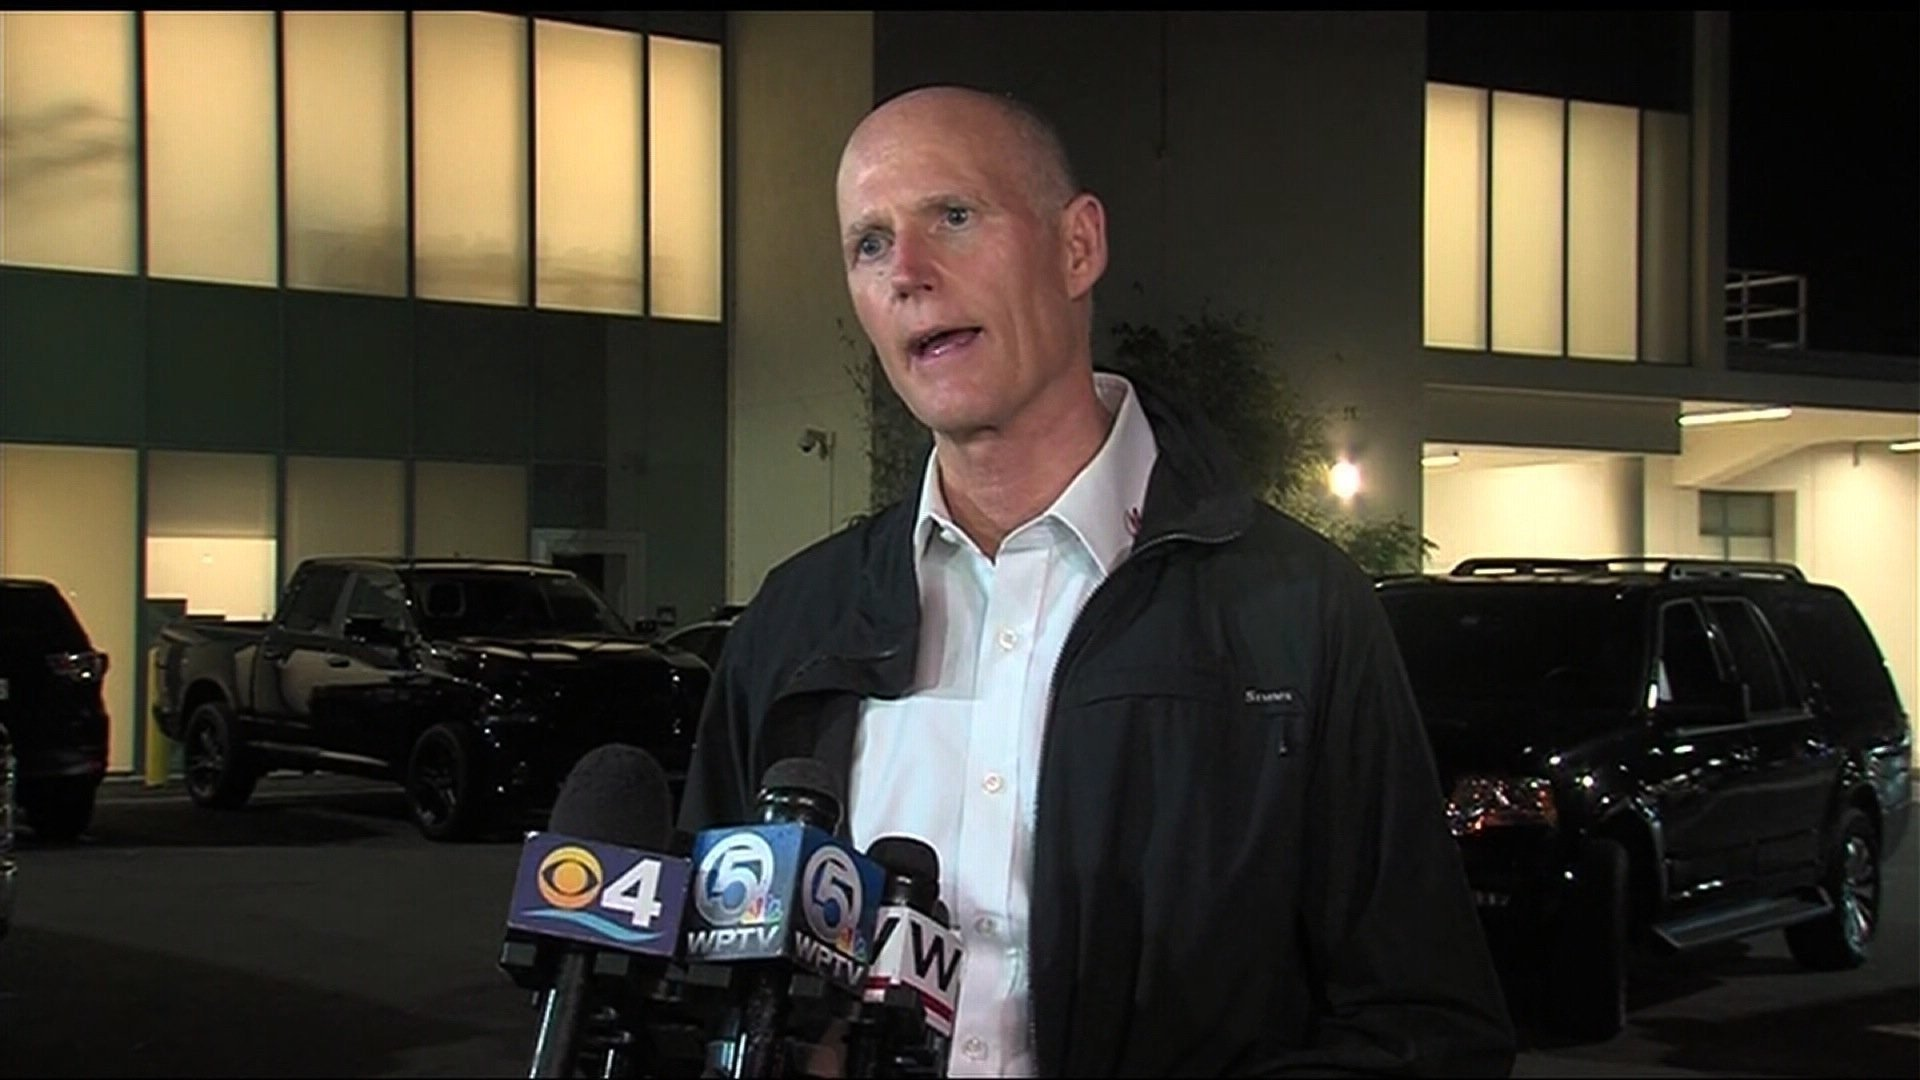 **Embargo: West Palm Beach-Ft. Pierce, FL**  Florida Gov. Rick Scott speaking about gun control laws in the state following the Parkland school shooting that took the lives of 17 people on February 14, 2018.